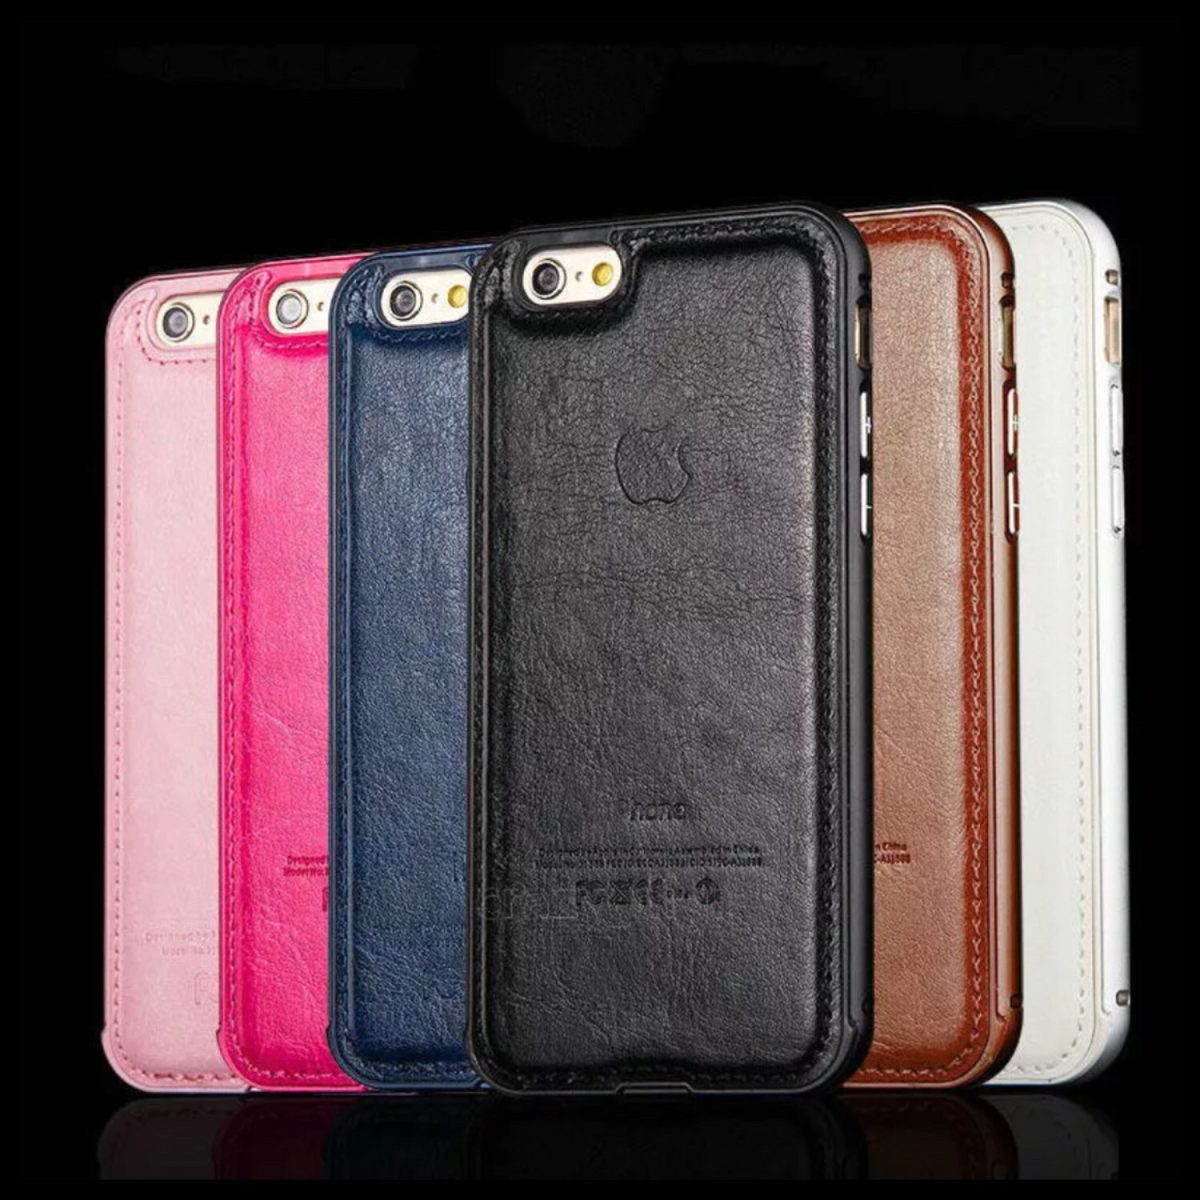 carcasa piel iphone 6s plus